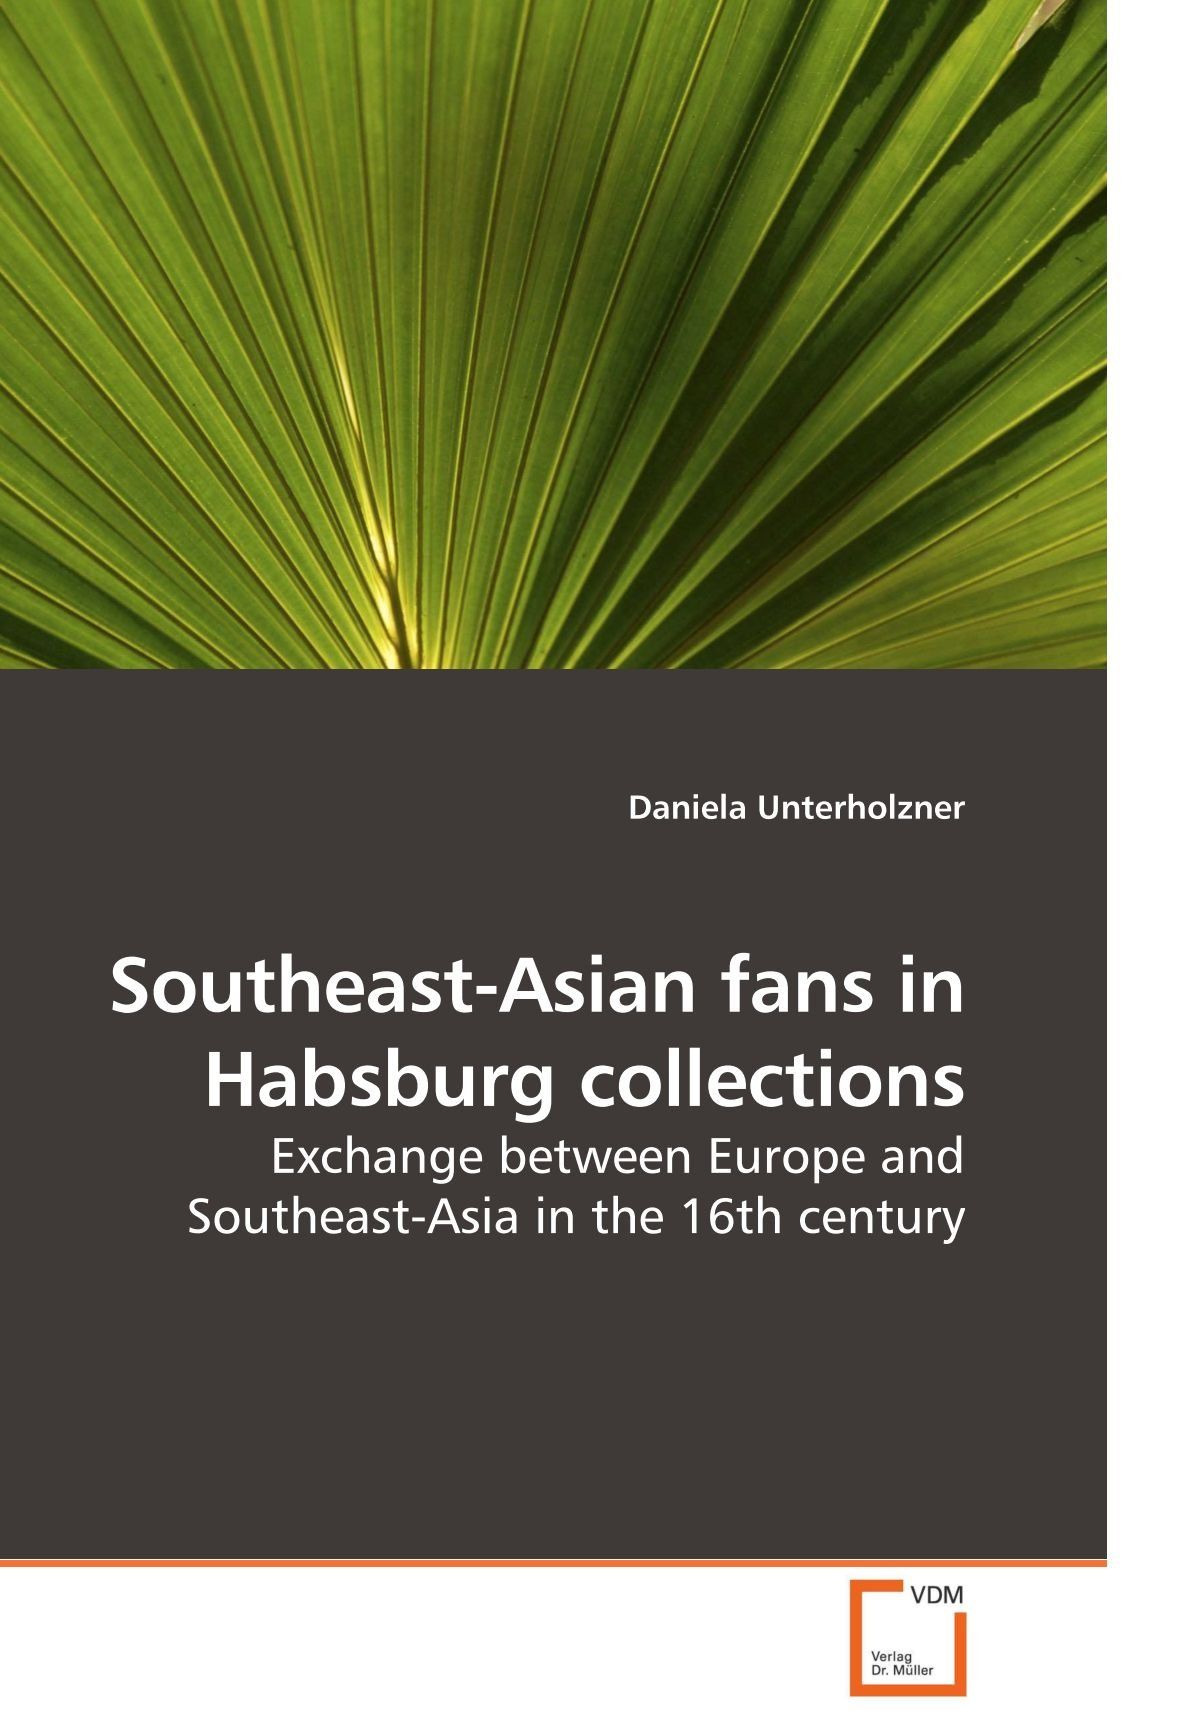 Southeast-Asian fans in Habsburg collections: Exchange between Europe and Southeast-Asia in the 16th century pdf